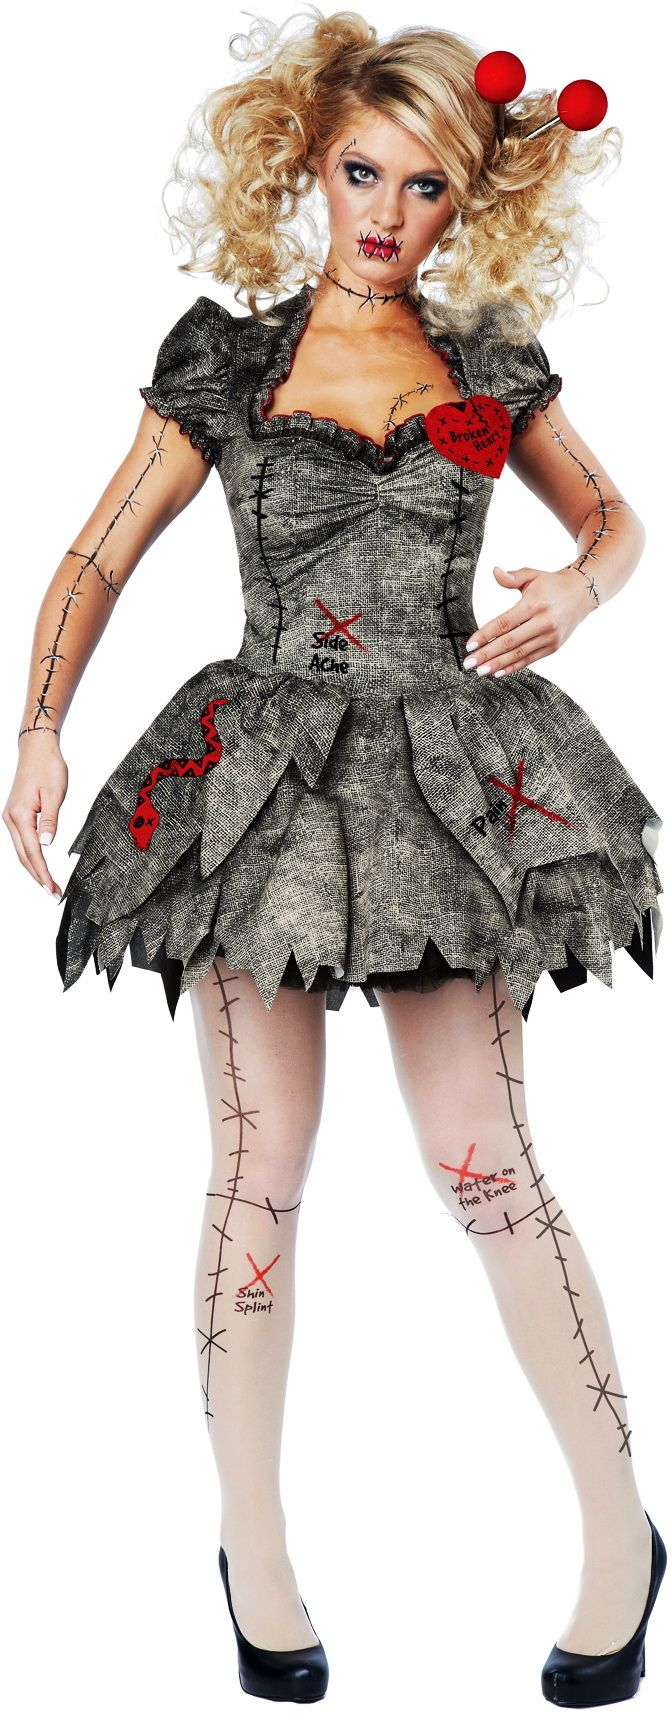 Details about Creepy Pins & Needles Voodoo Outfit Halloween Rag ...